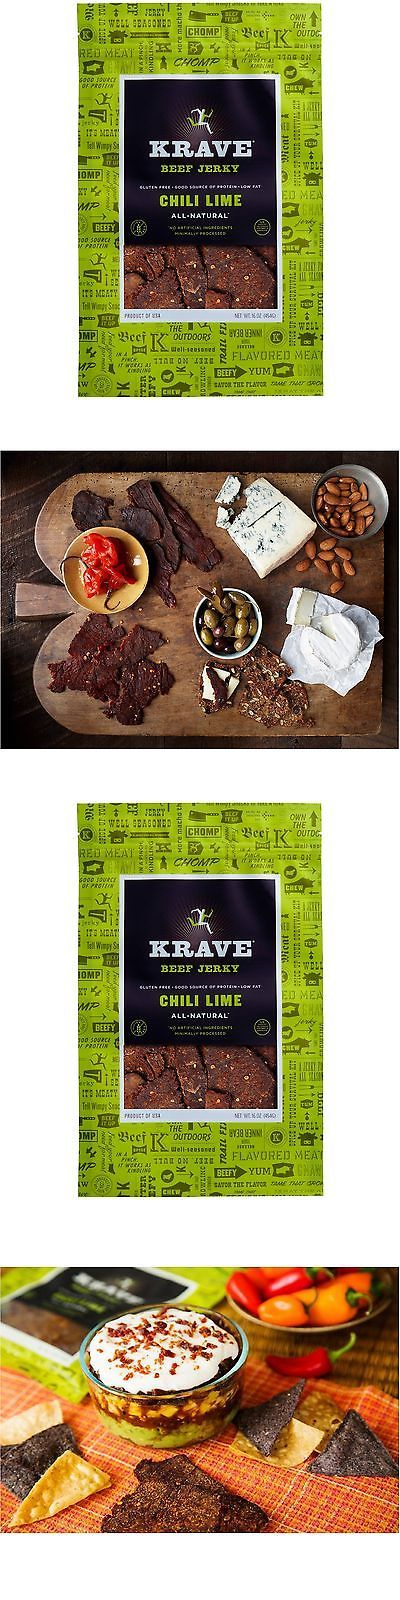 Buffalo Beef and Turkey Jerky 115716: Krave Beef Jerky Chili Lime 16 Oz - Online Only -> BUY IT NOW ONLY: $34.95 on eBay!